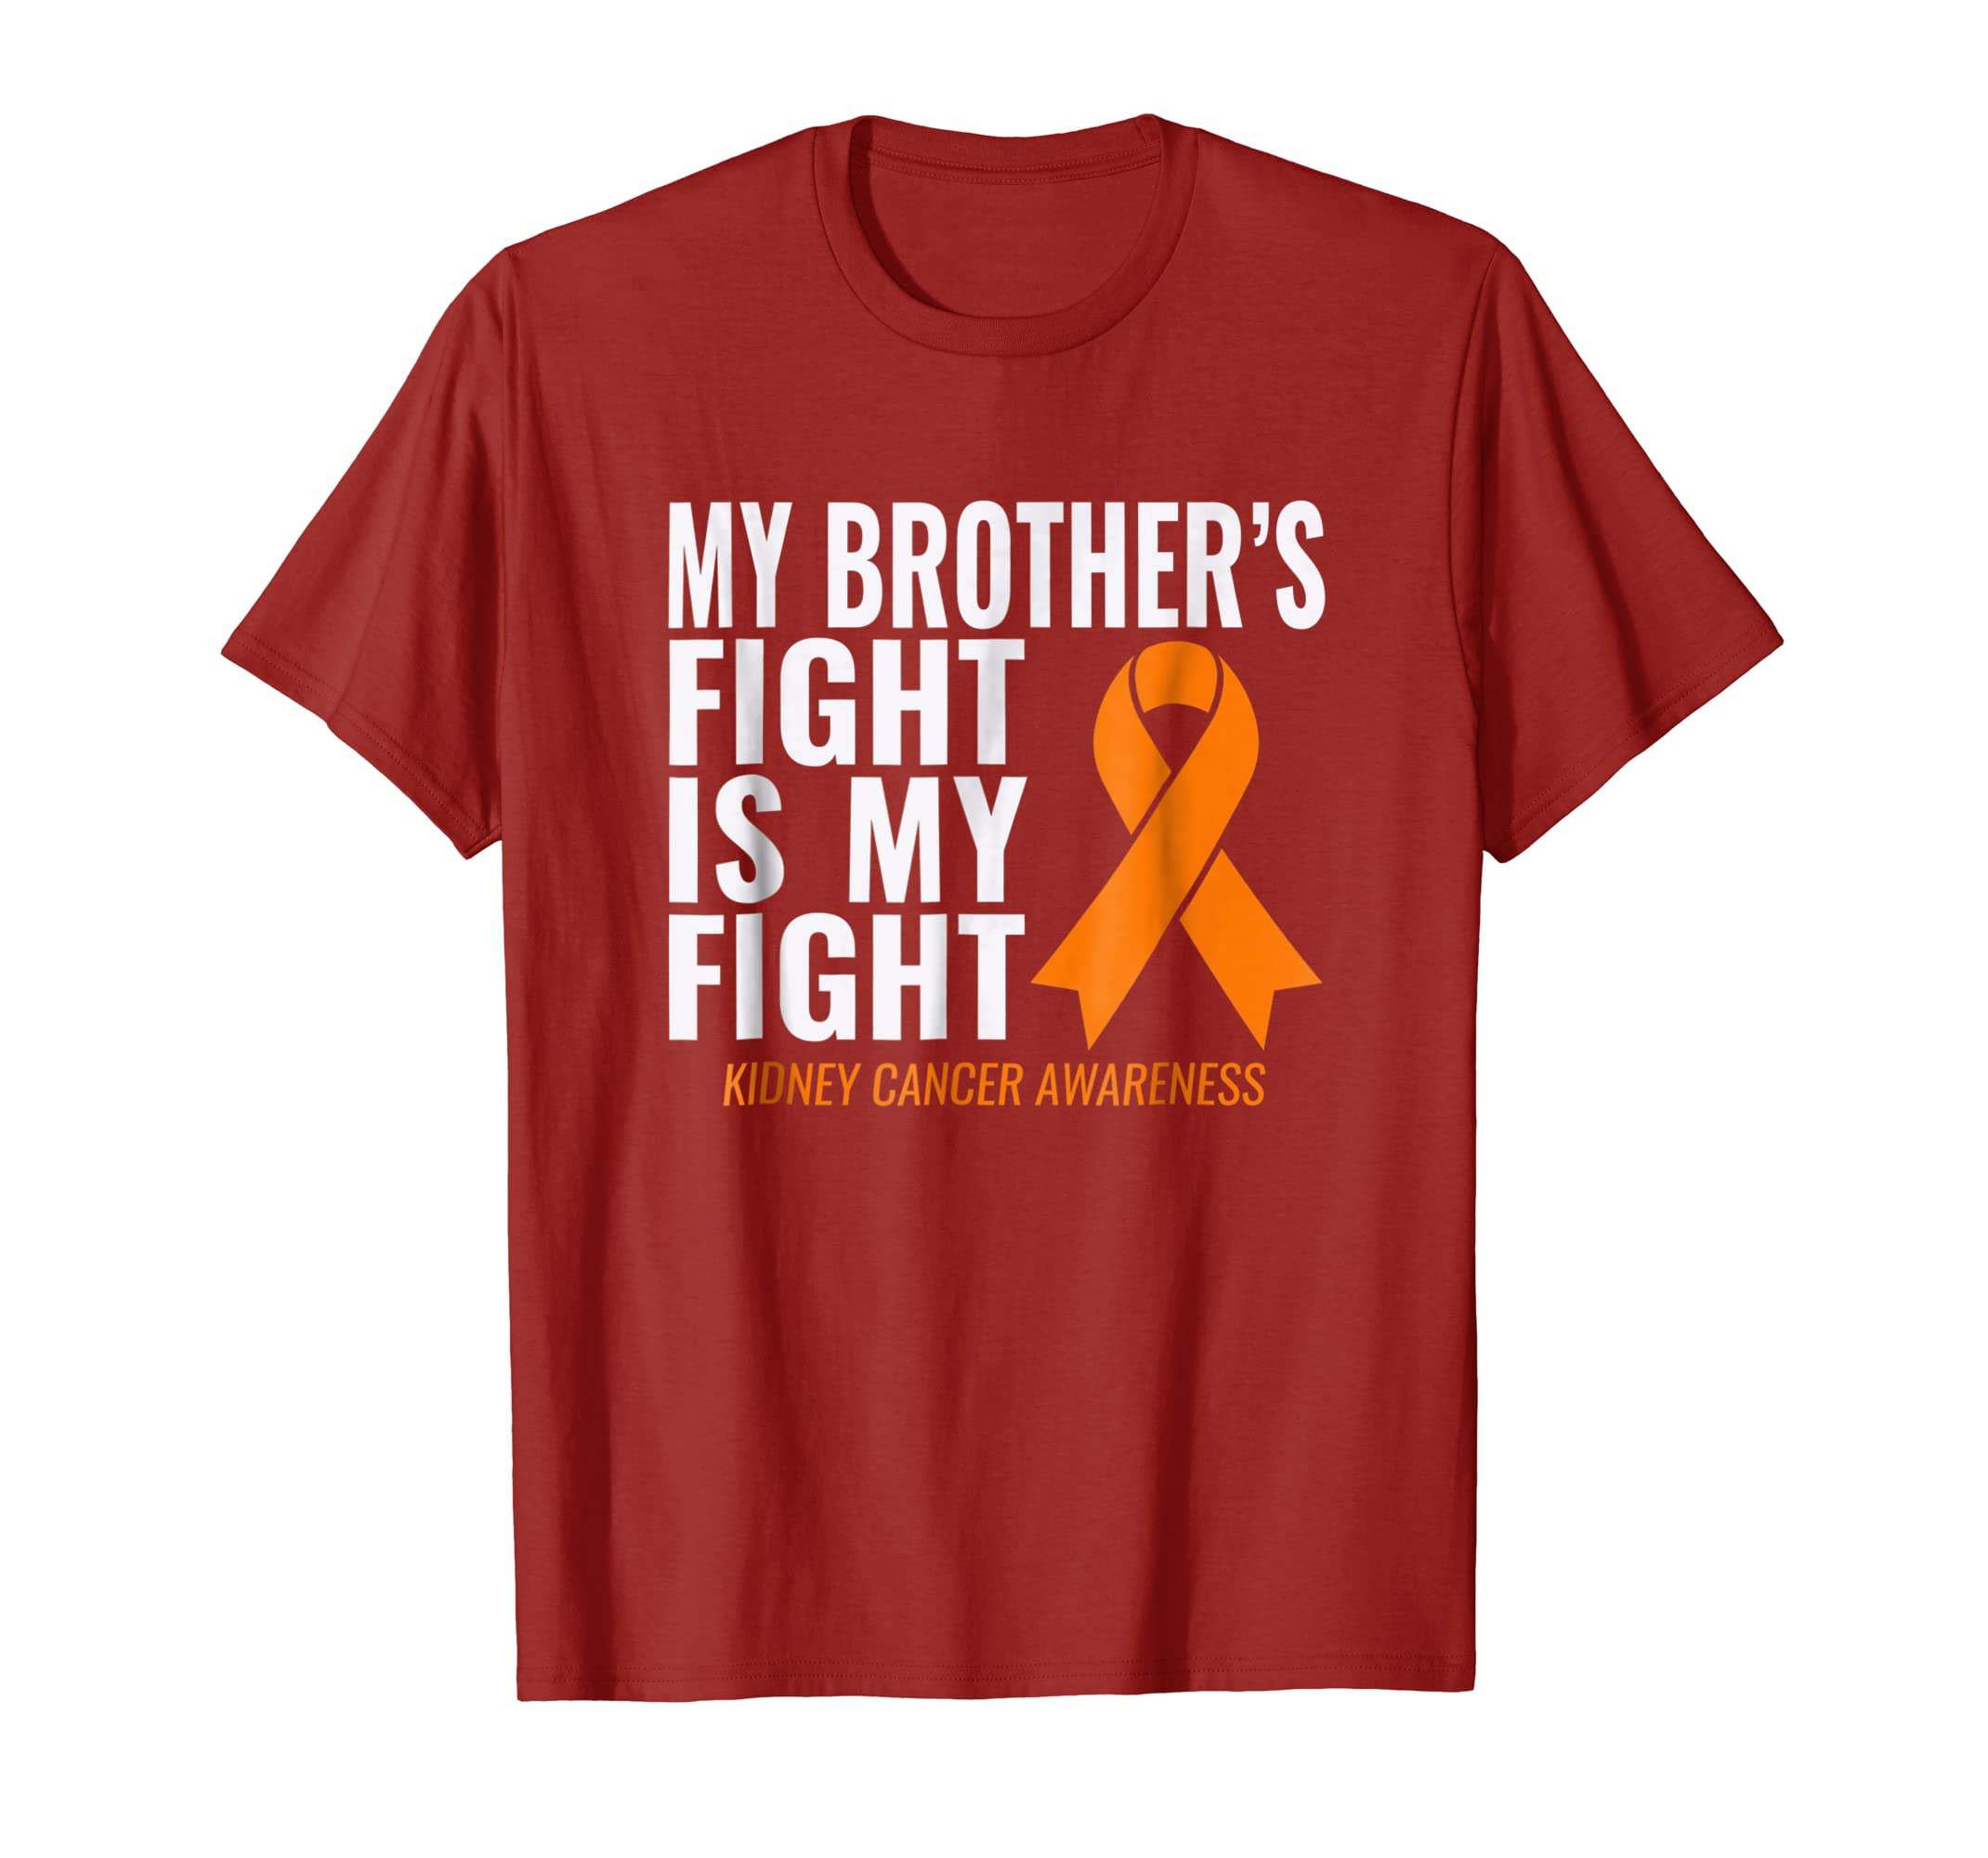 Kidney Cancer Shirt: My Brother's Fight is My Fight-ln